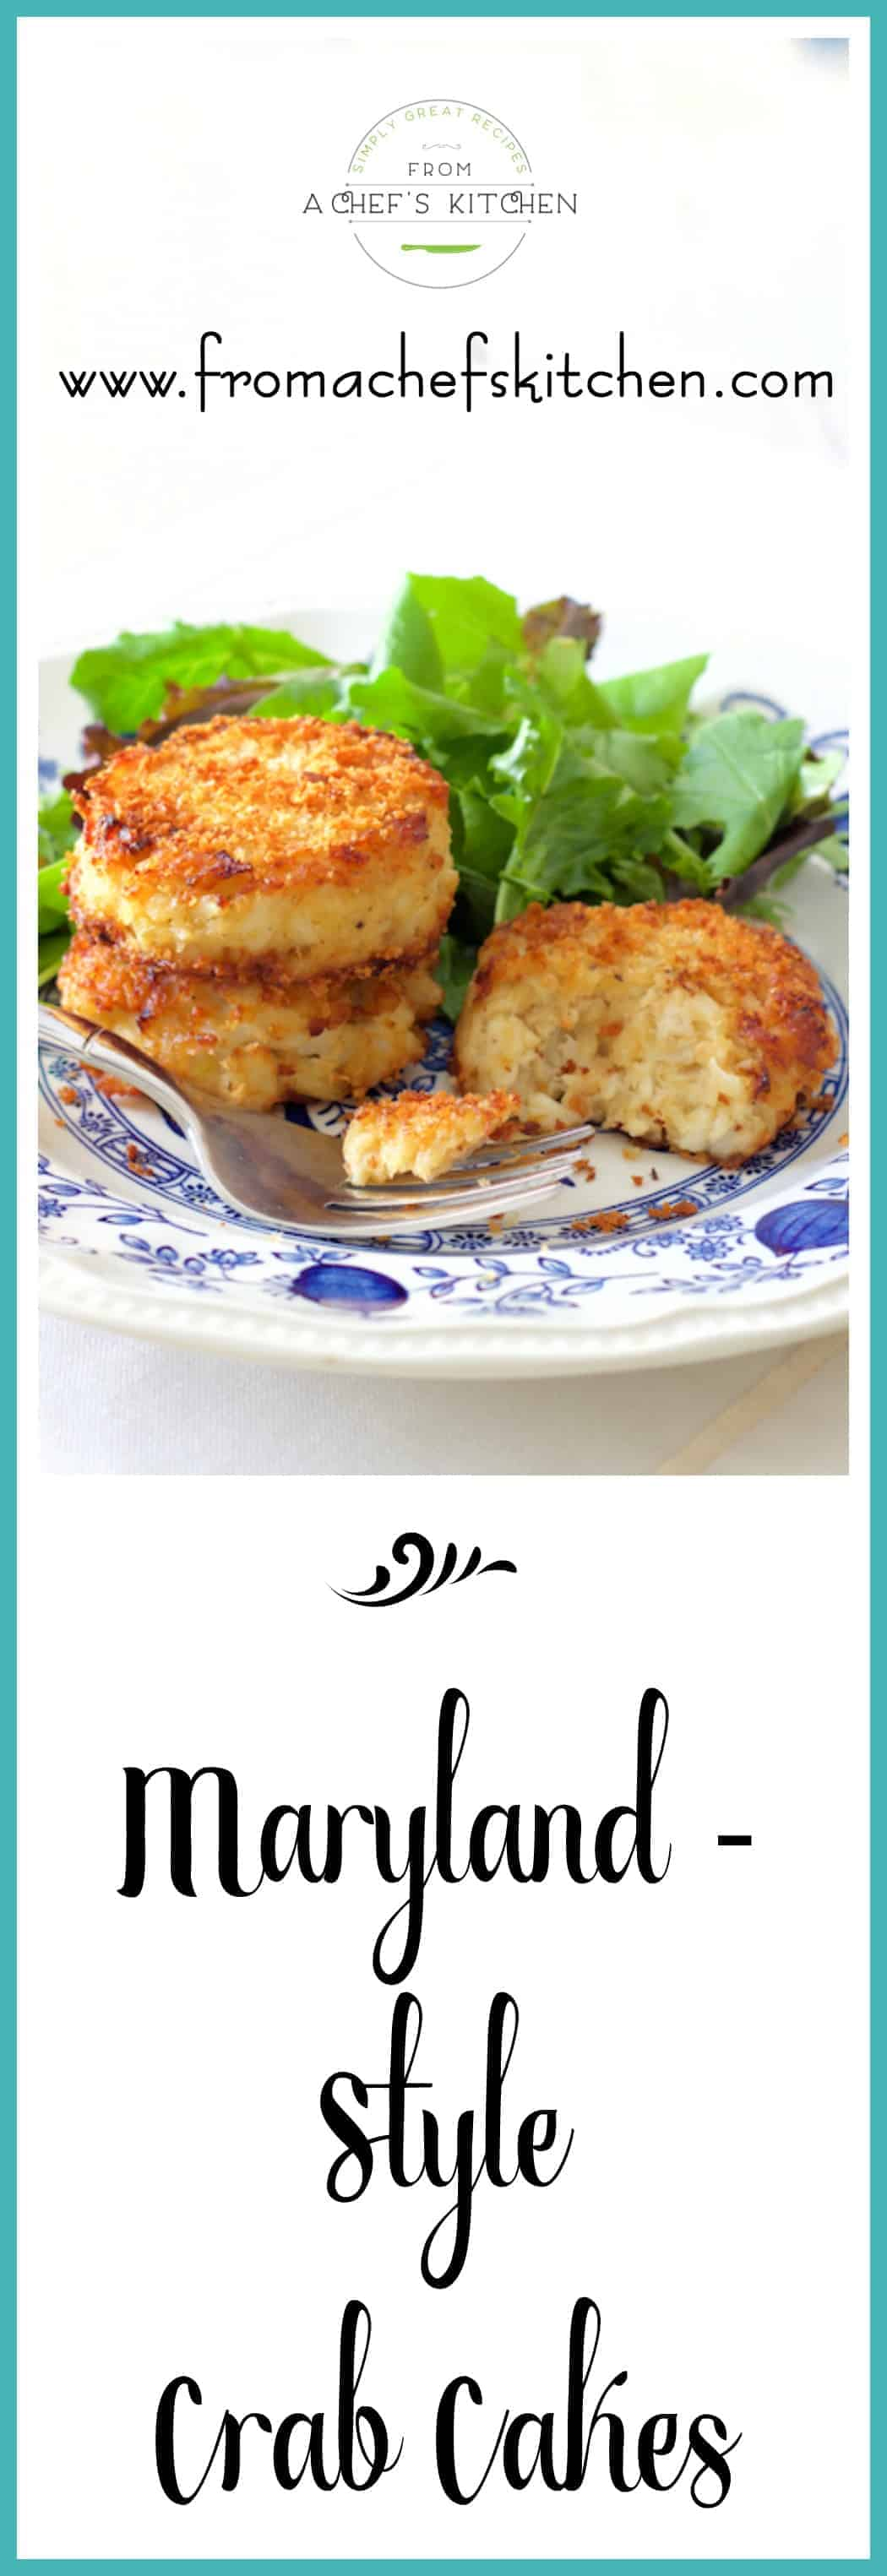 Baltimore Crab Cakes By Mail